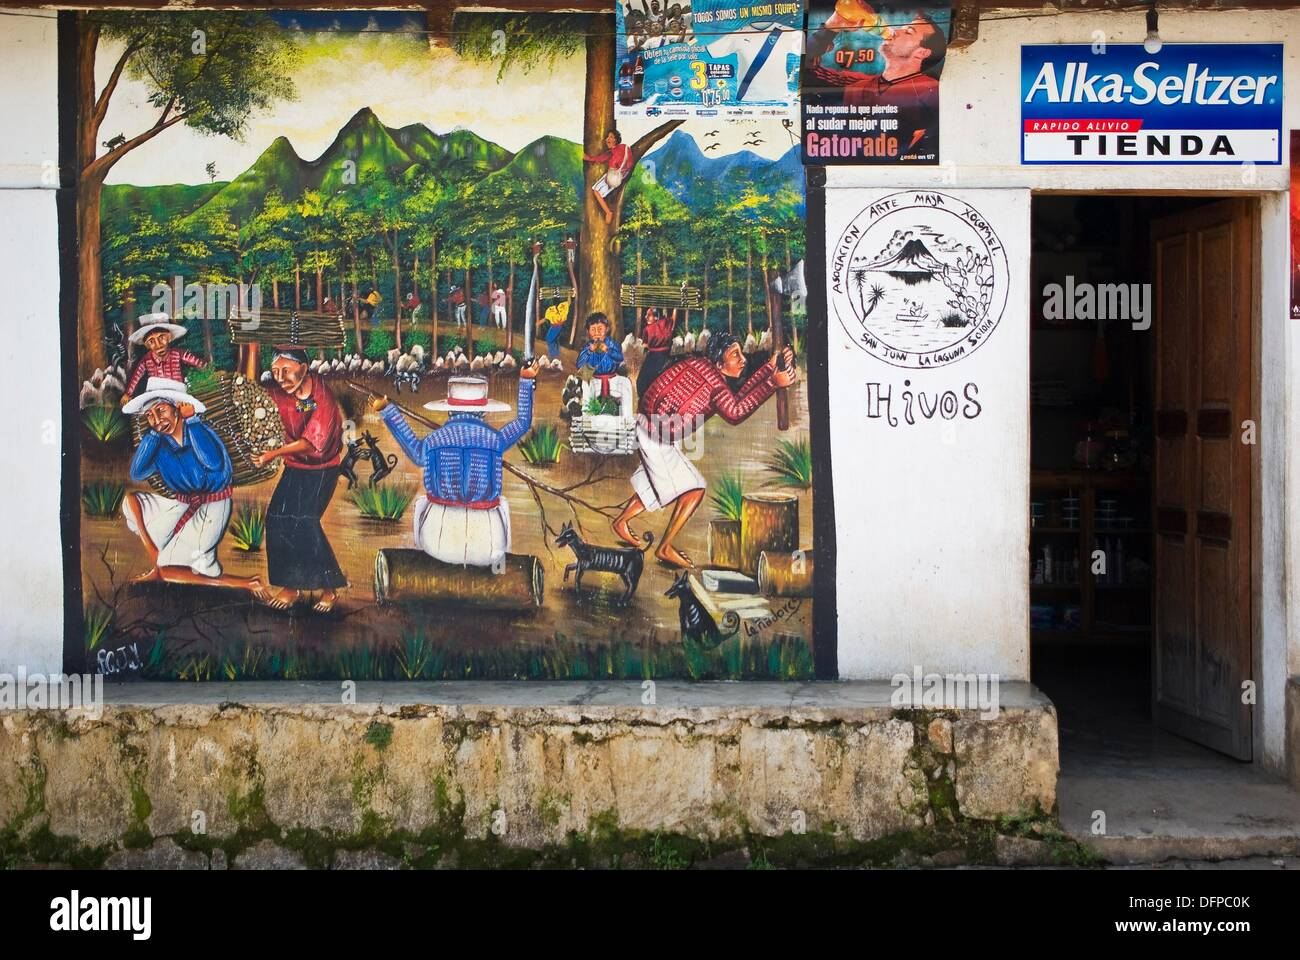 Mural painting on the outside wall of a house and store in San Juan